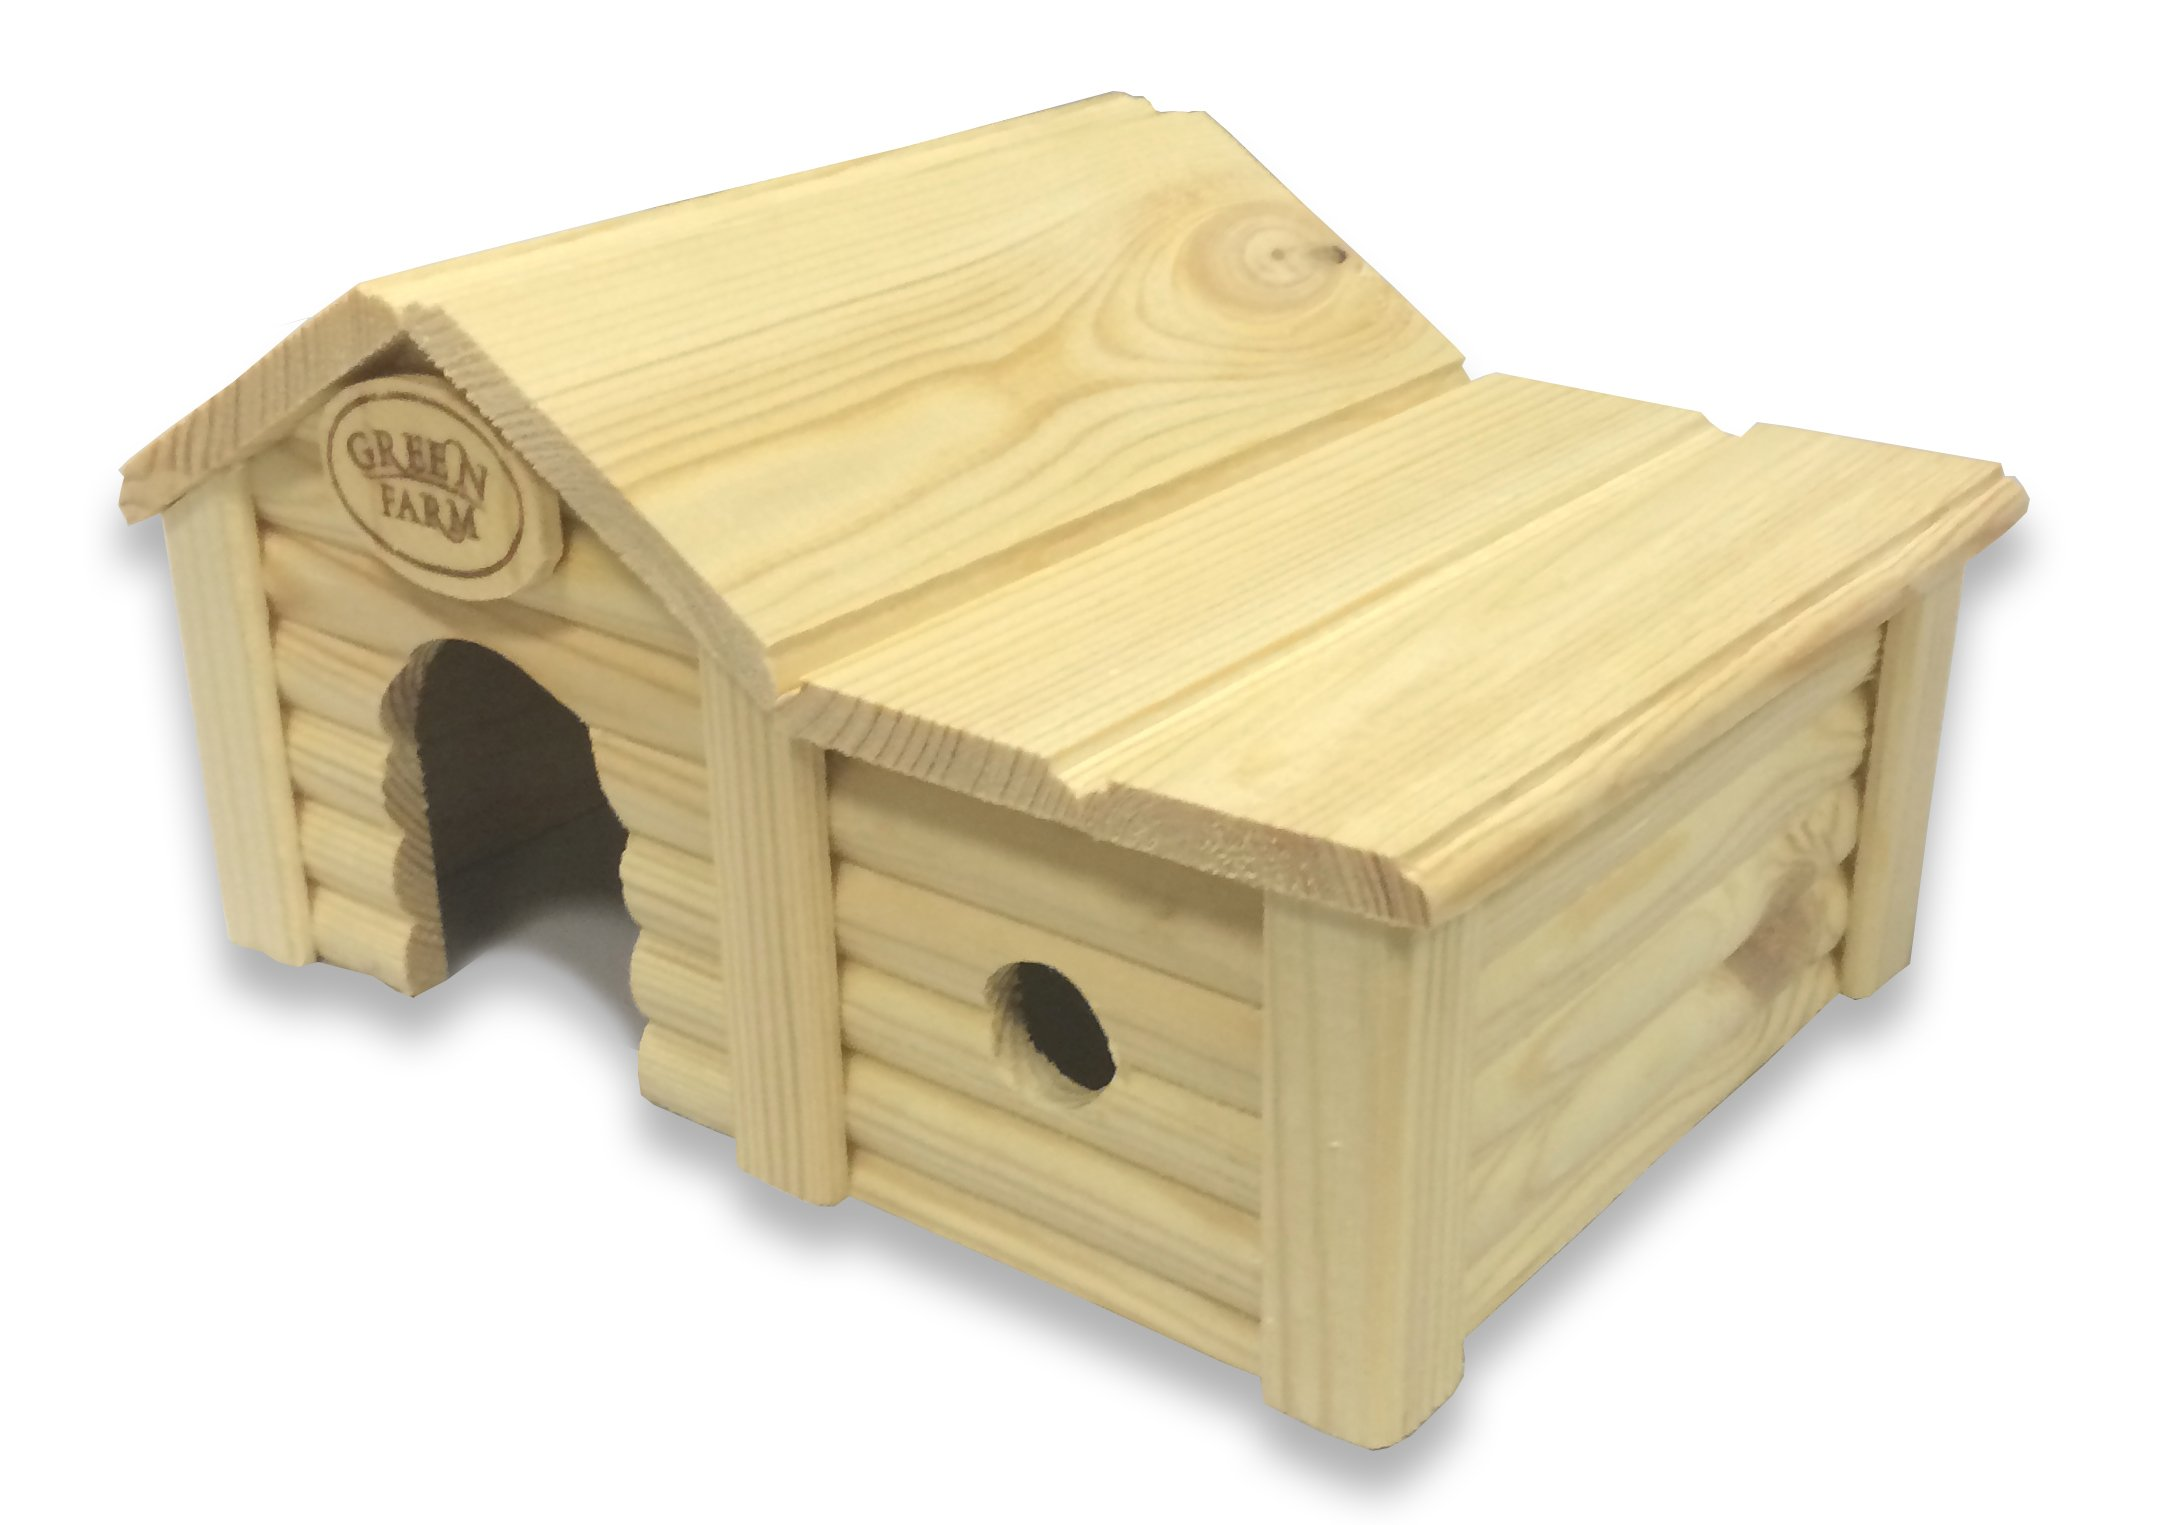 Green Farm Small Animal House with Annex for Hamsters and Mice by Green Farm (Image #2)